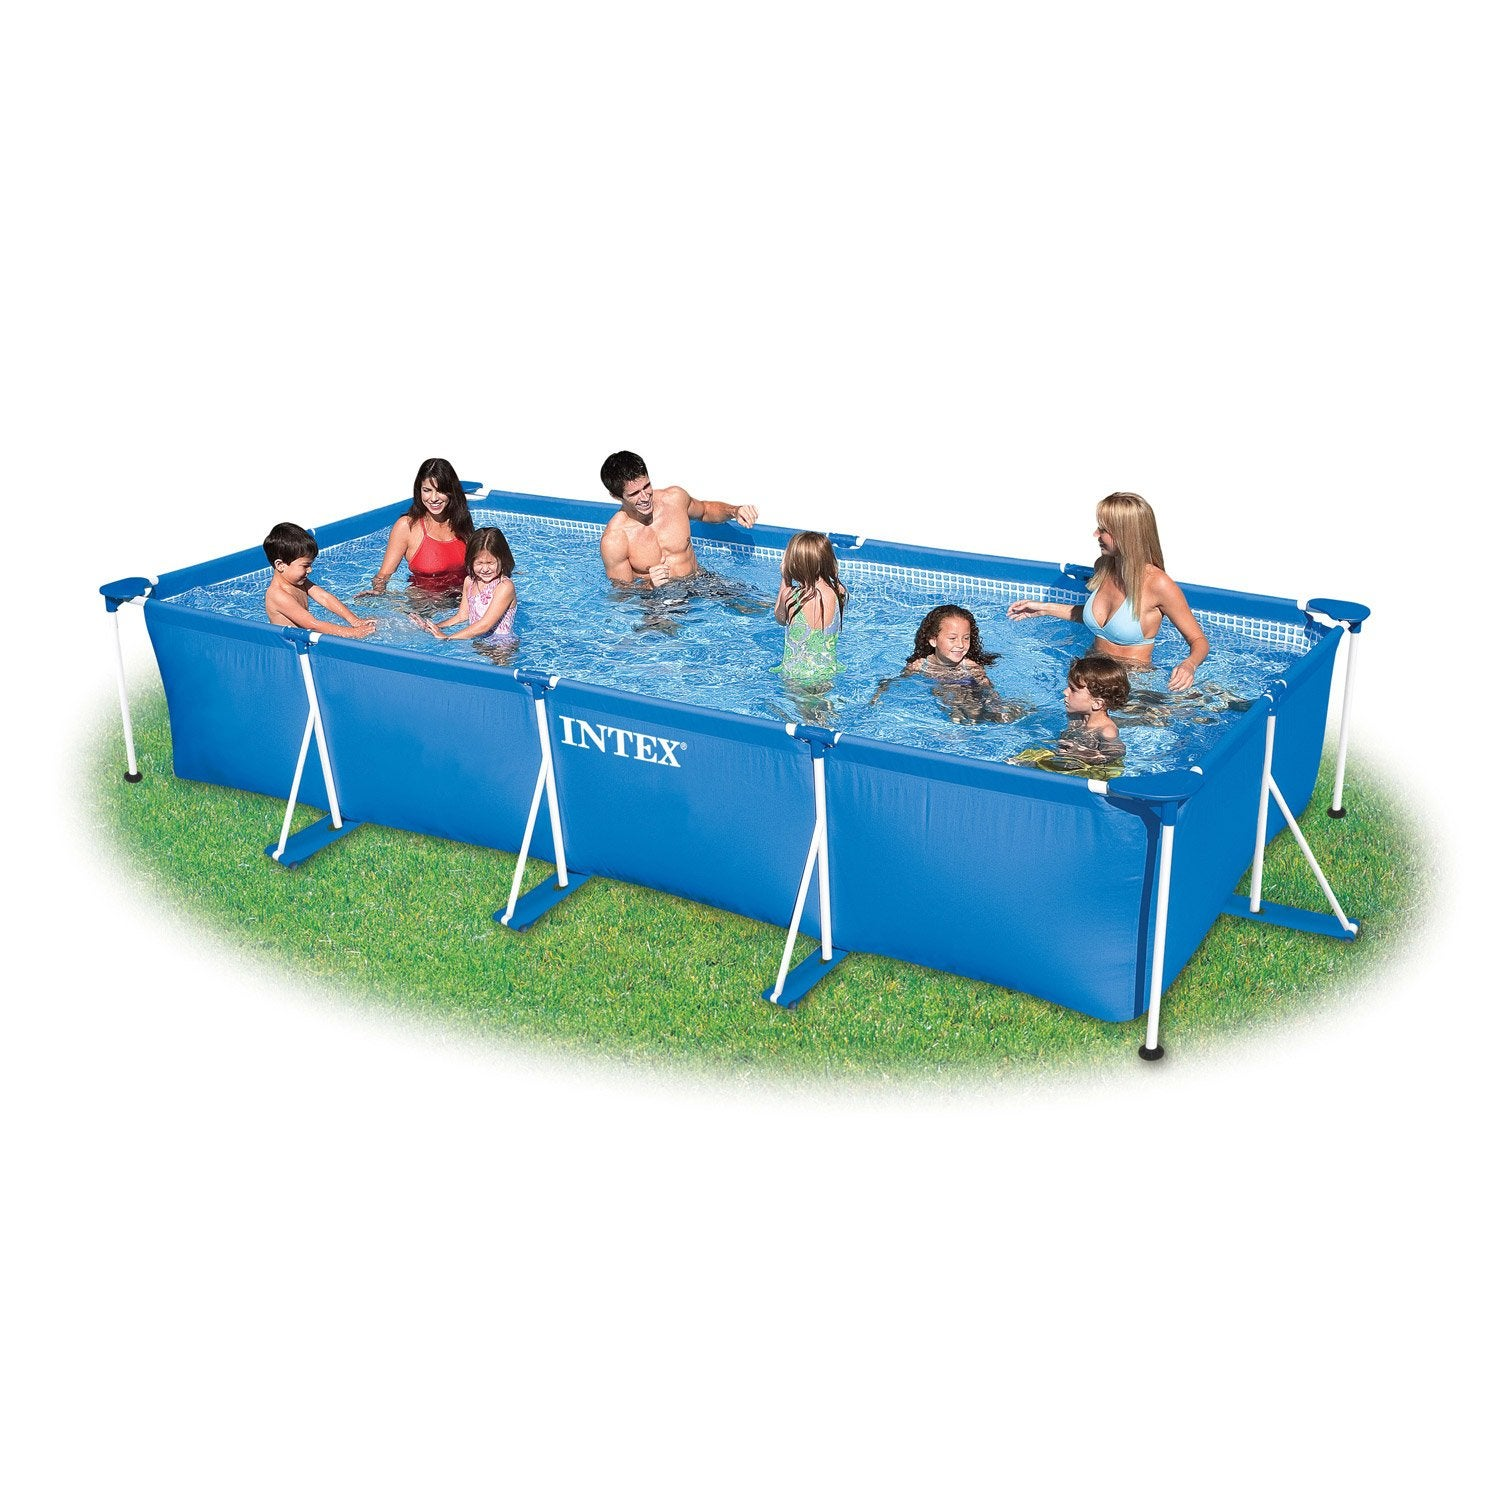 Piscine hors sol autoportante tubulaire intex l x l for Piscine tubulaire